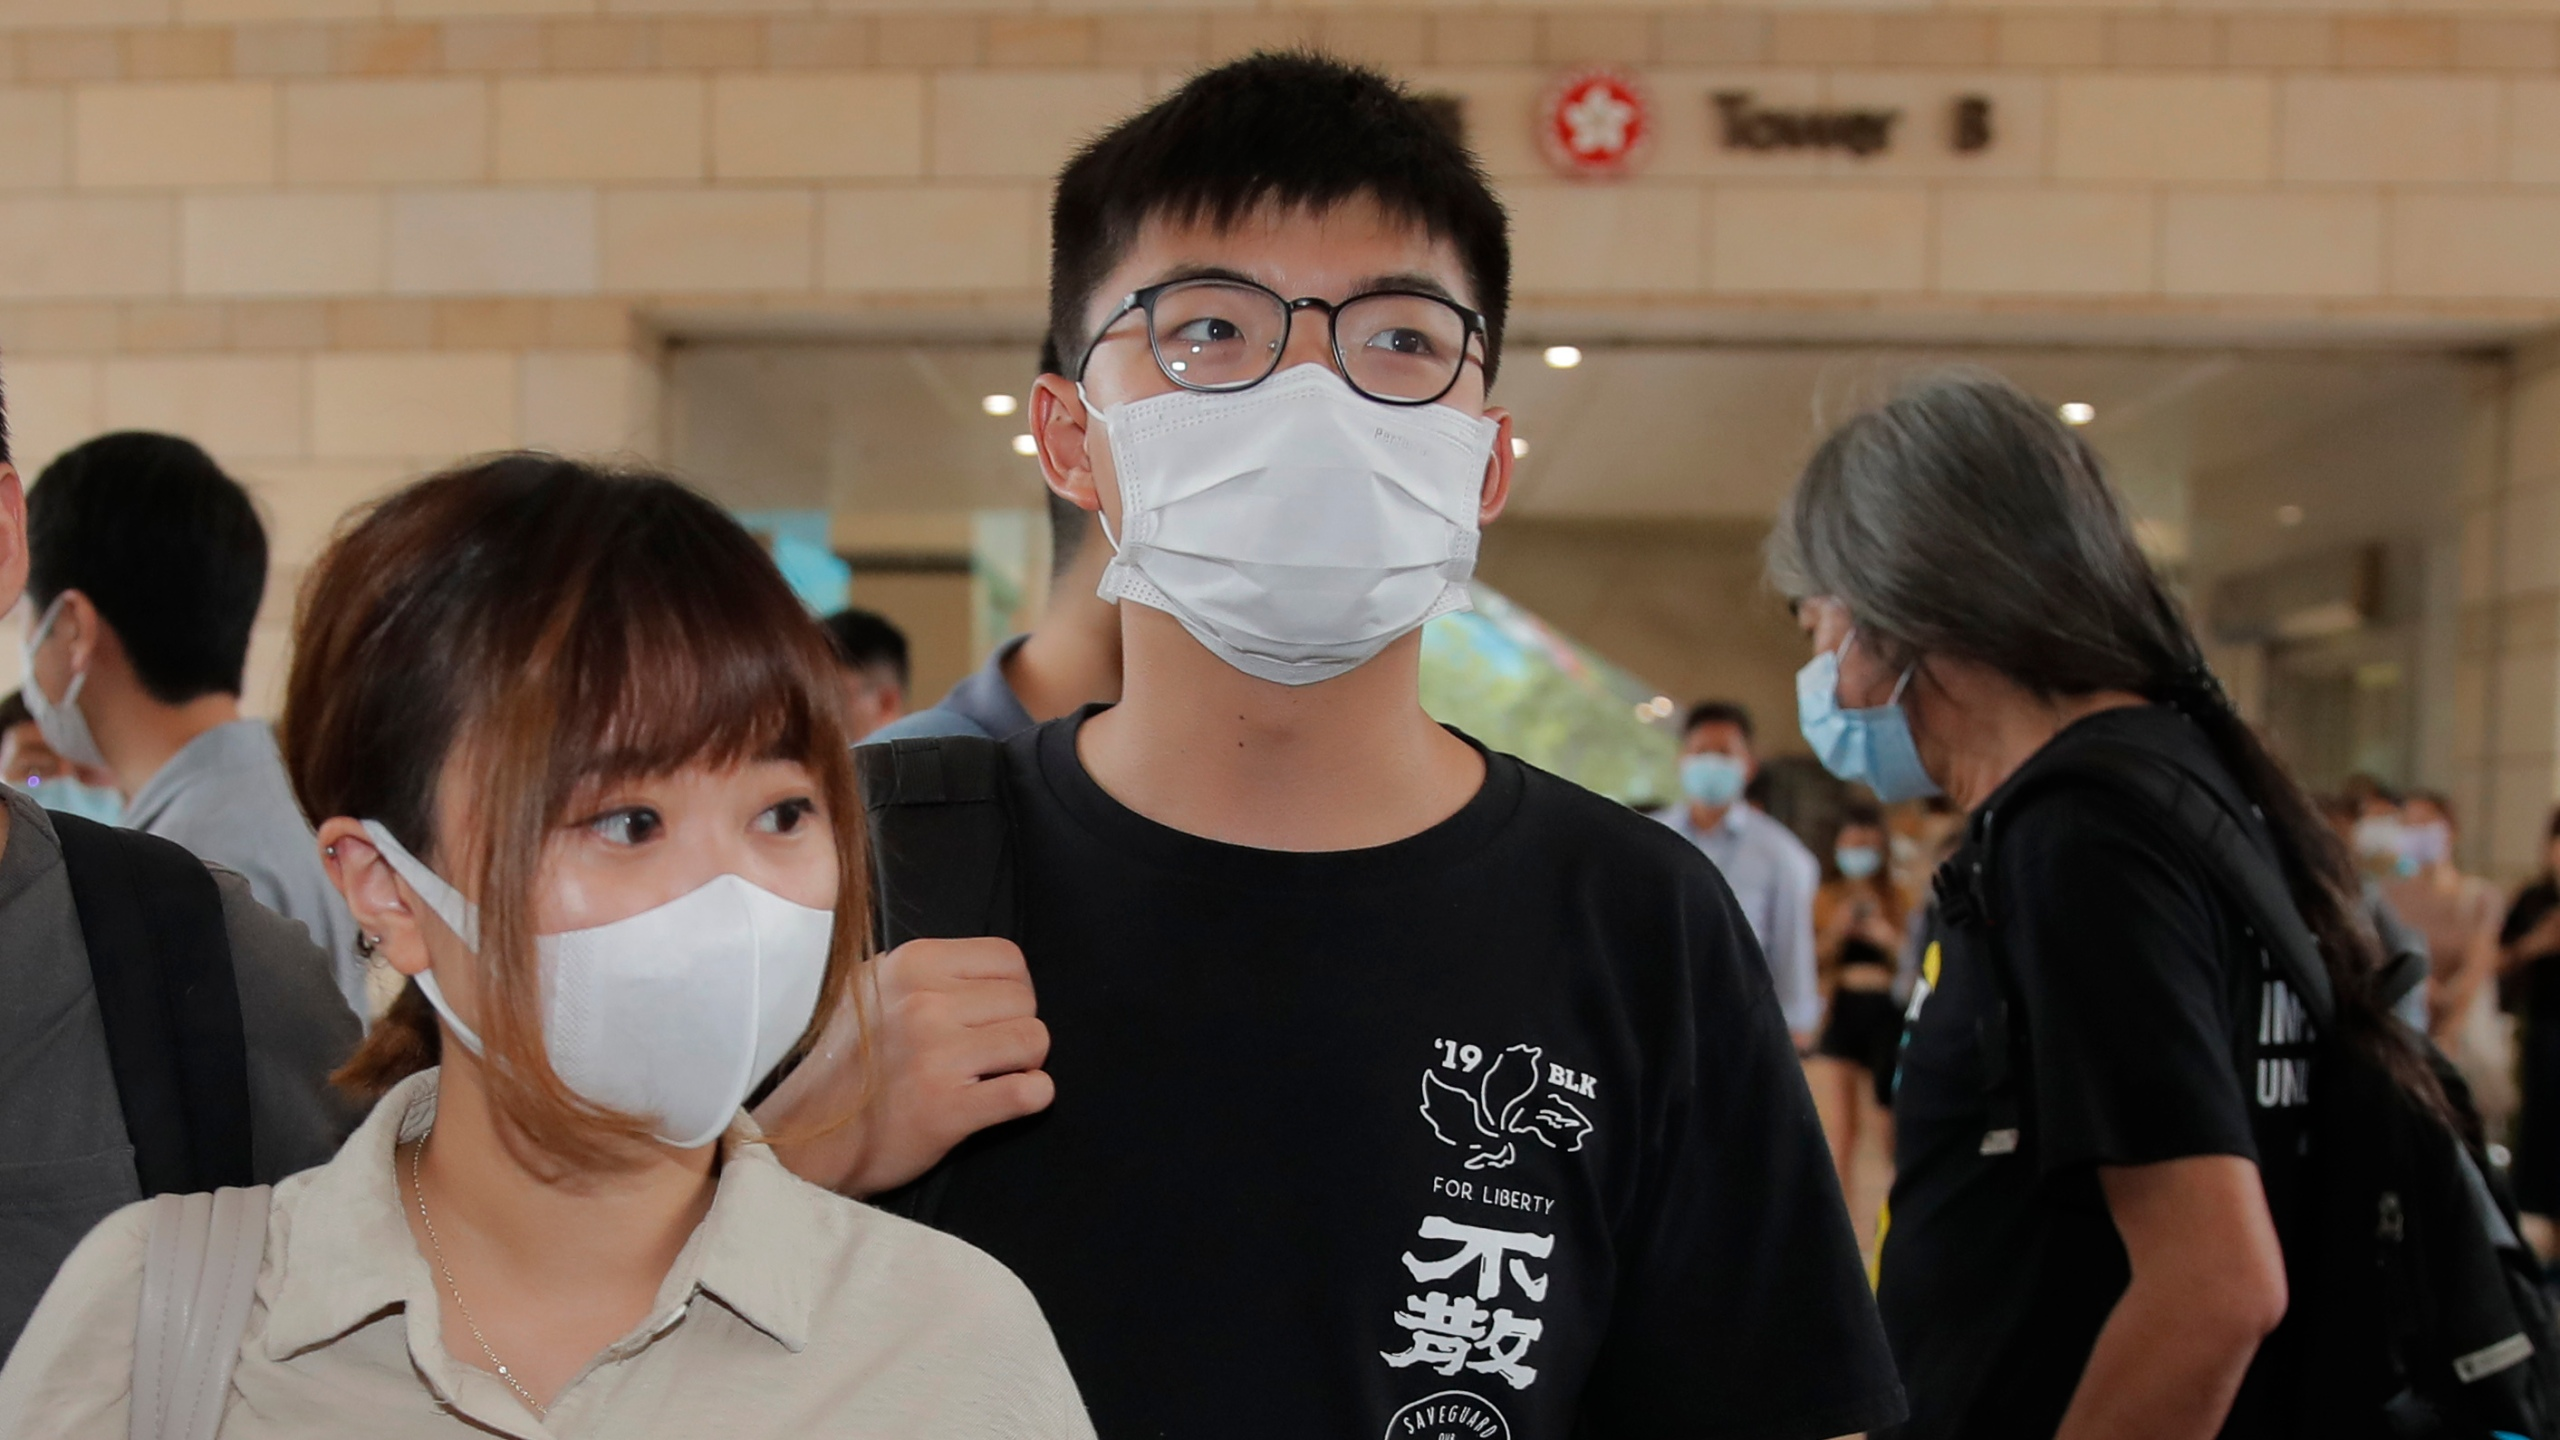 Hong Kong Activist Wong Arrested Over Unauthorized Assembly Wwlp Joshua gomez ретвитнул(а) sarah lancaster. 2